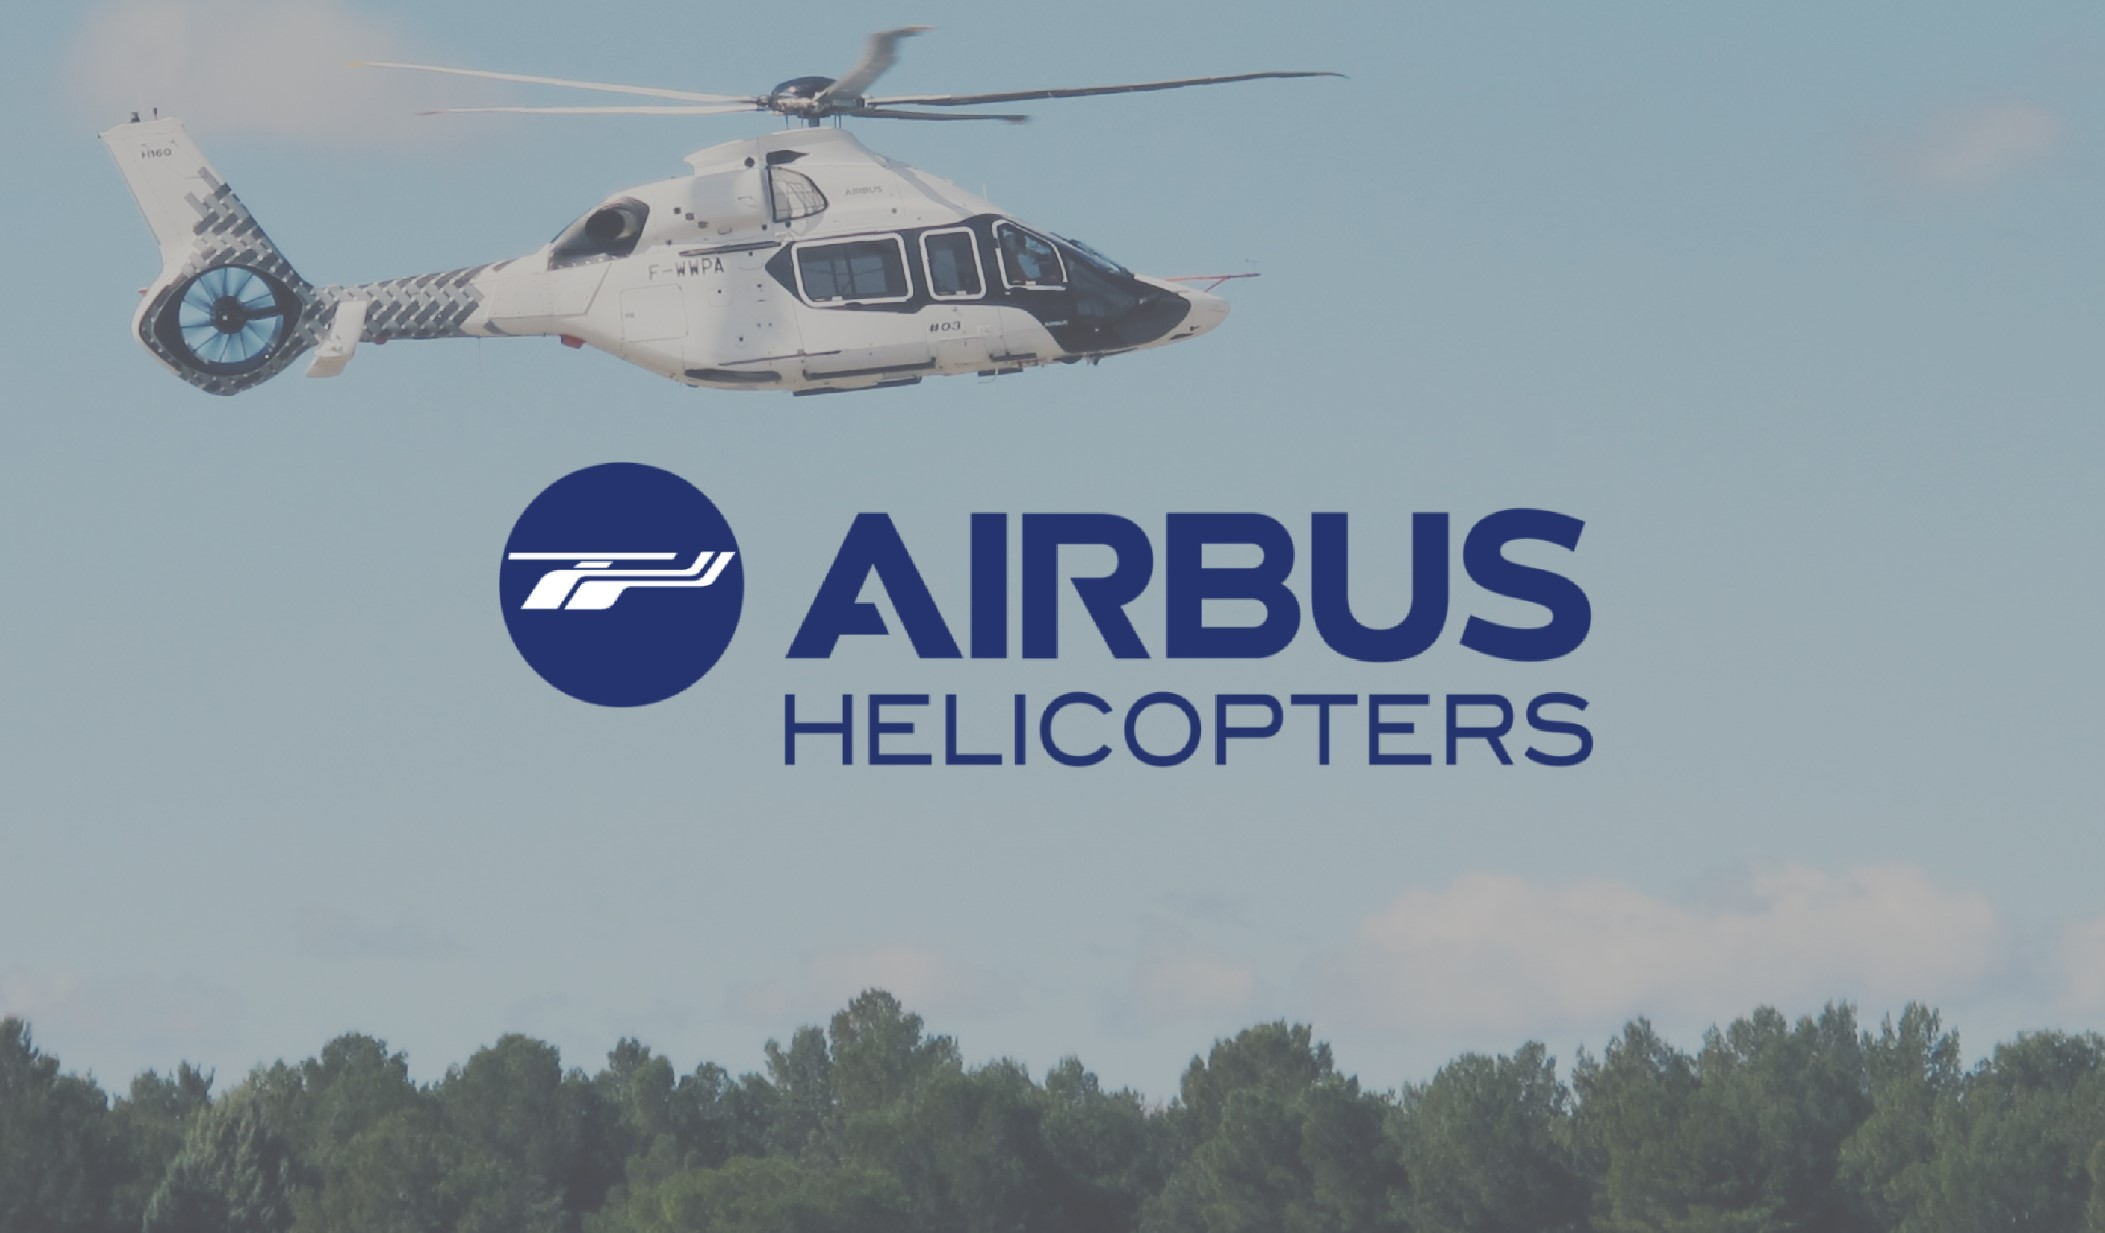 Airbus helicopters spare parts for sale | New and Overhauled